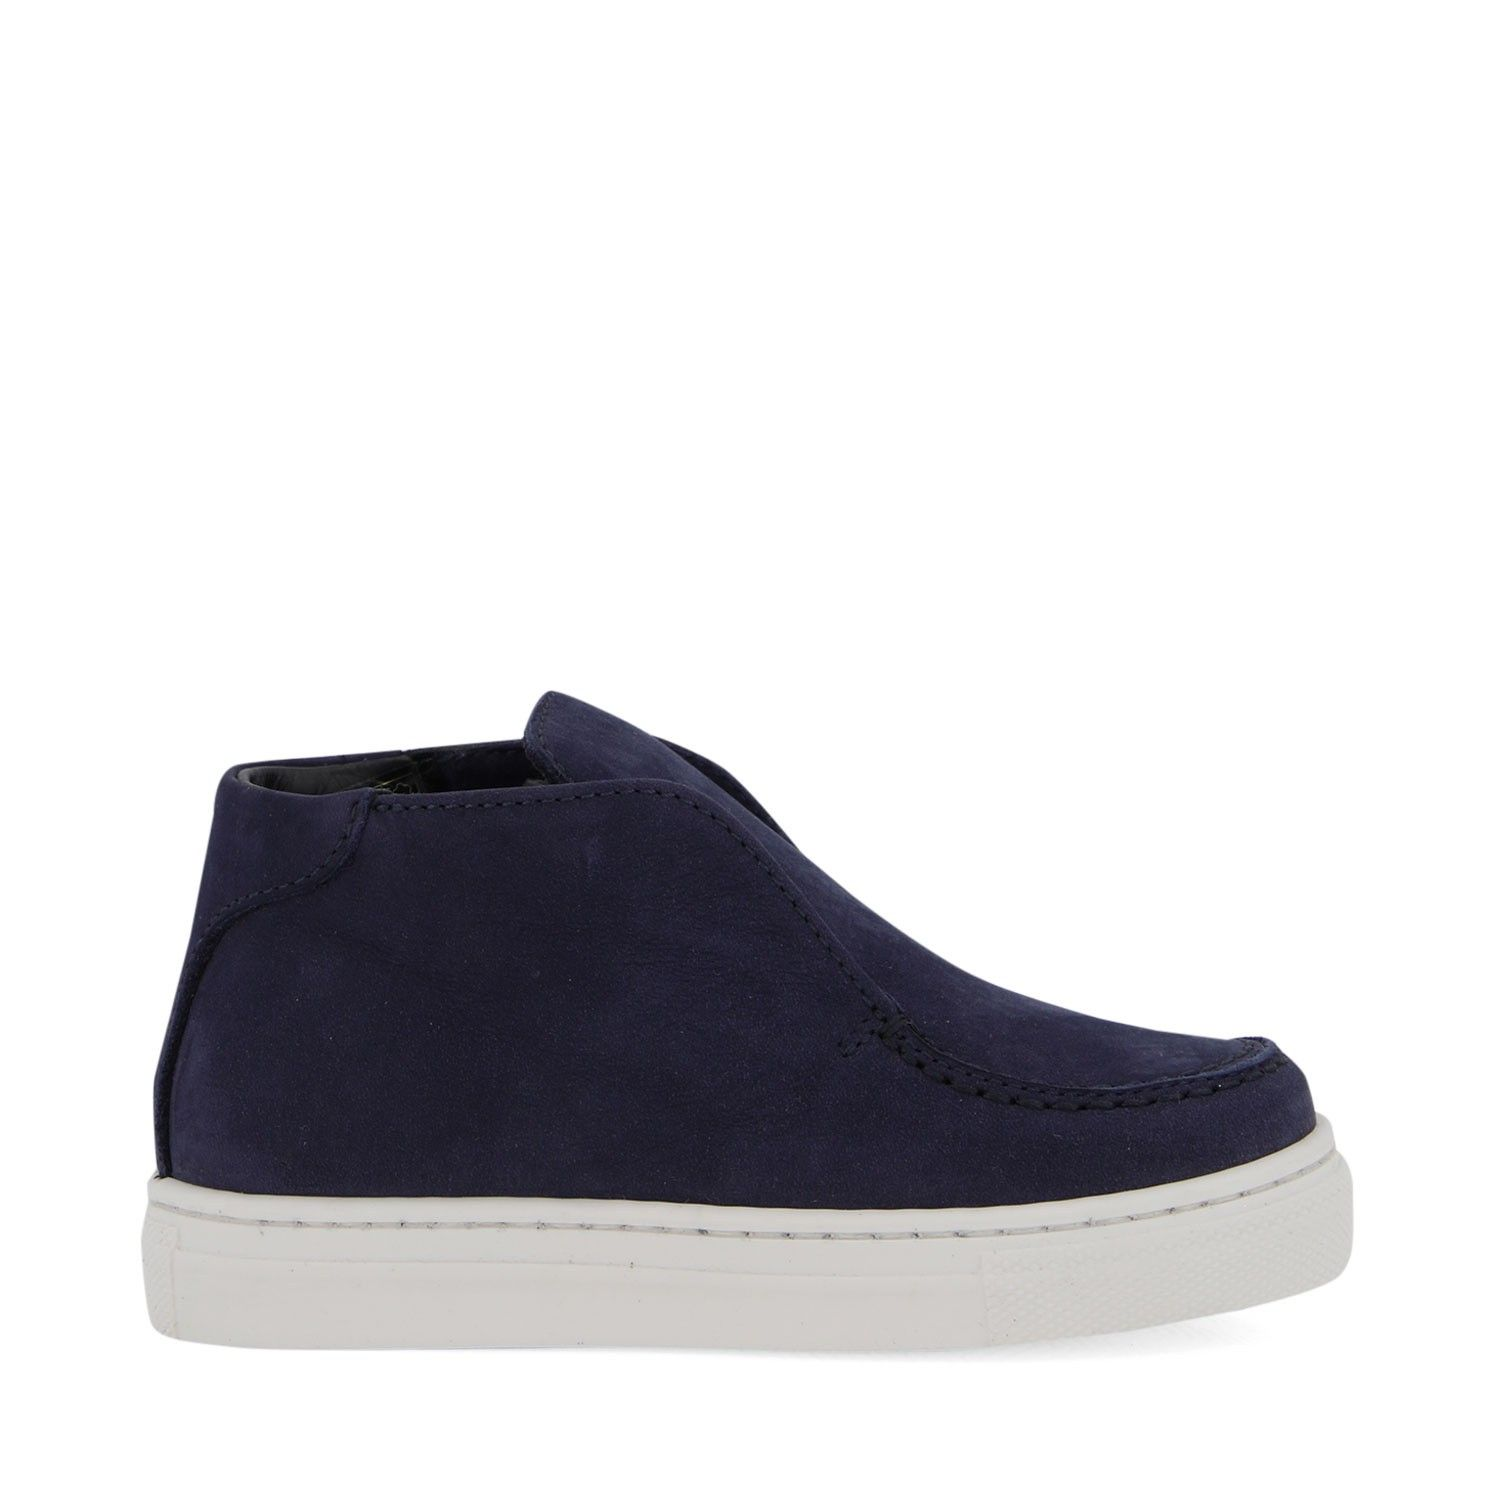 Picture of Andrea Montelpare MT18062 kids shoes navy